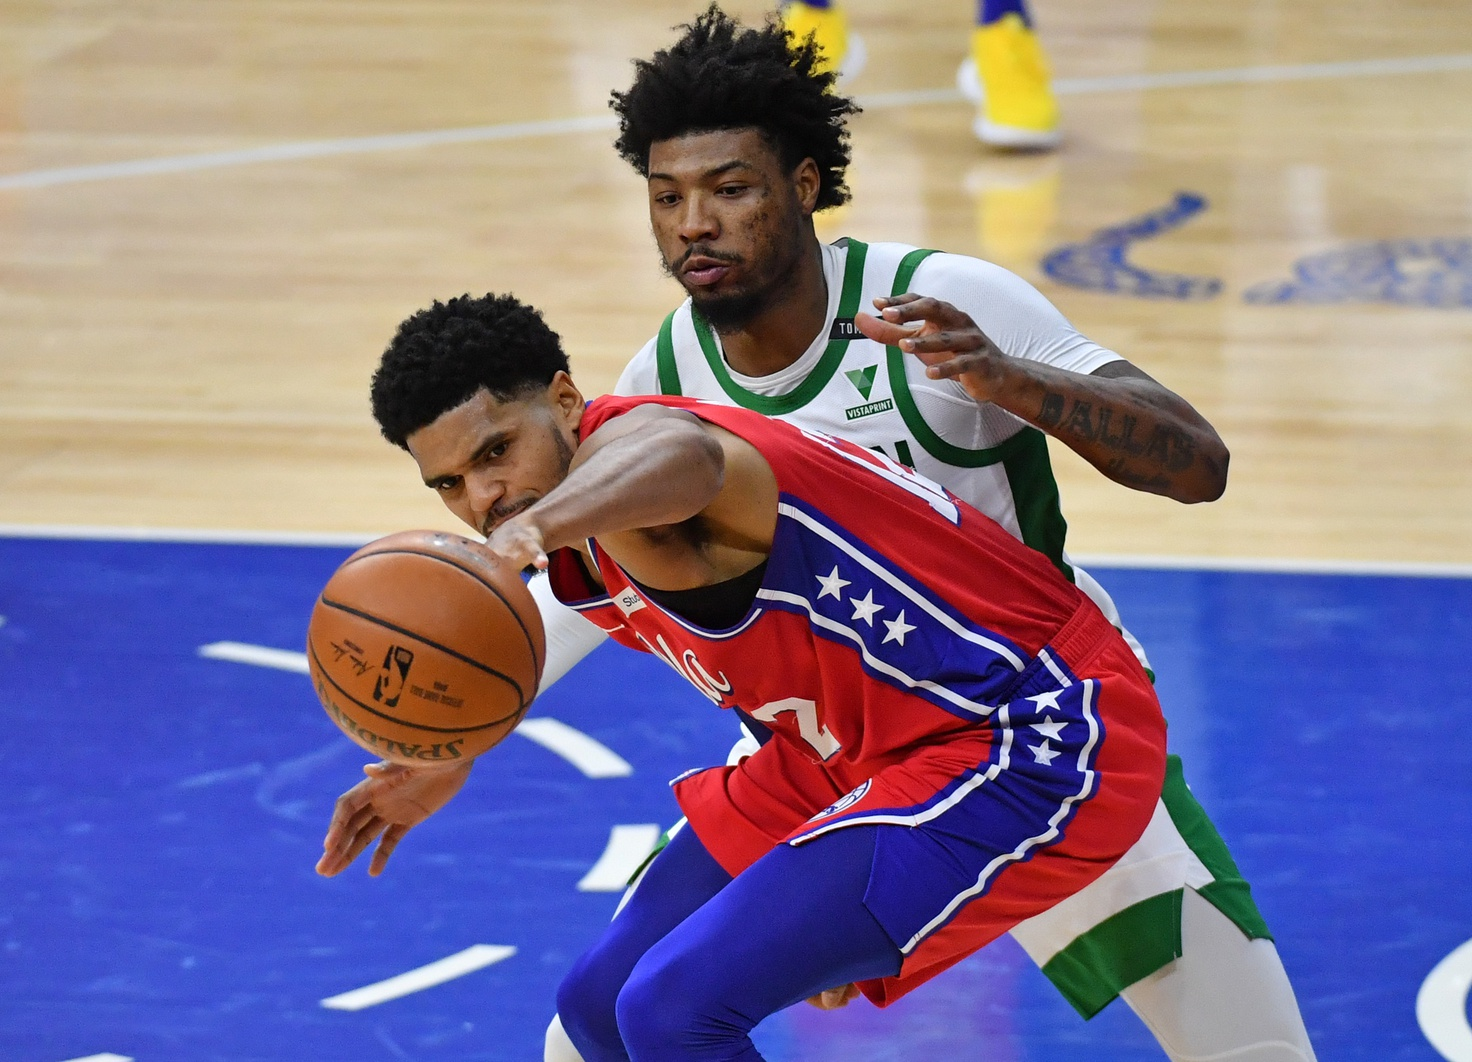 5 rational thoughts following another collapse-driven Celtics loss to the Sixers